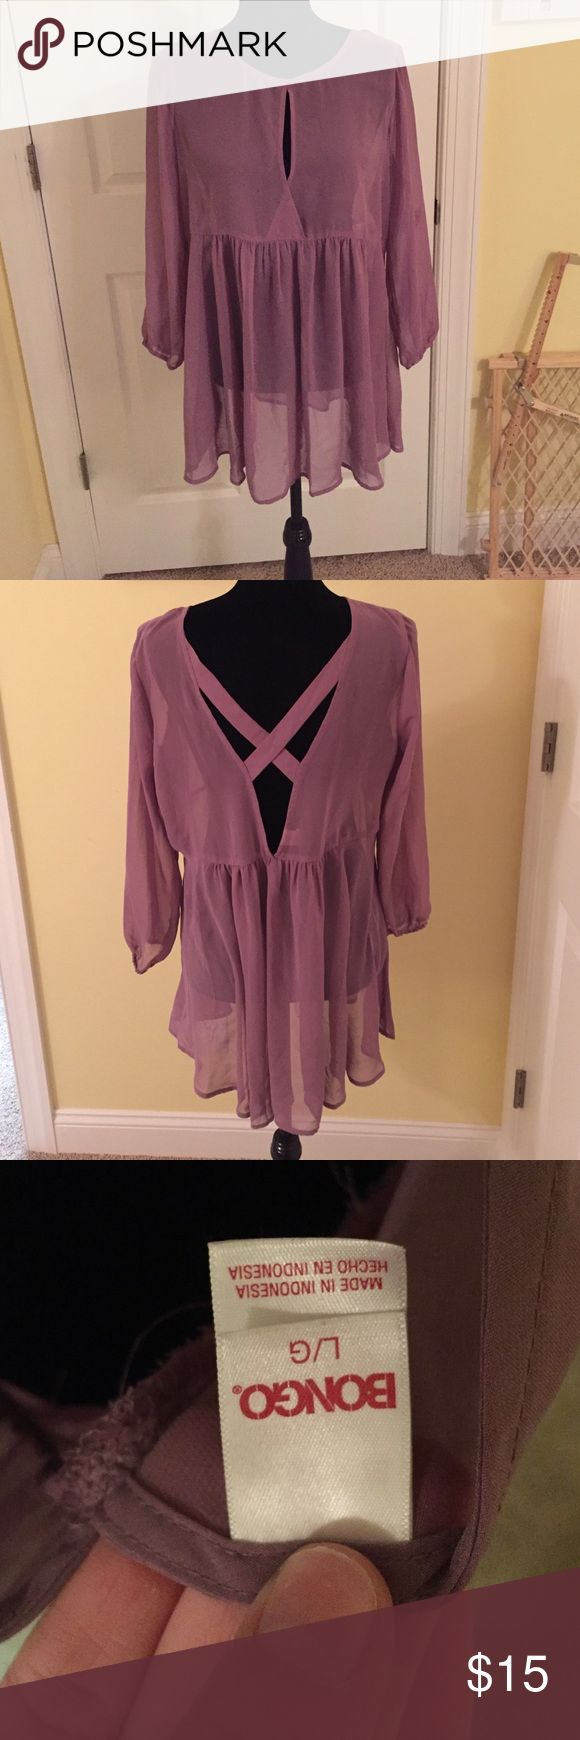 Purple shirt Super cute purple shirt. In great condition. Super cute!! Has a cross cross back design too! BONGO Tops Blouses